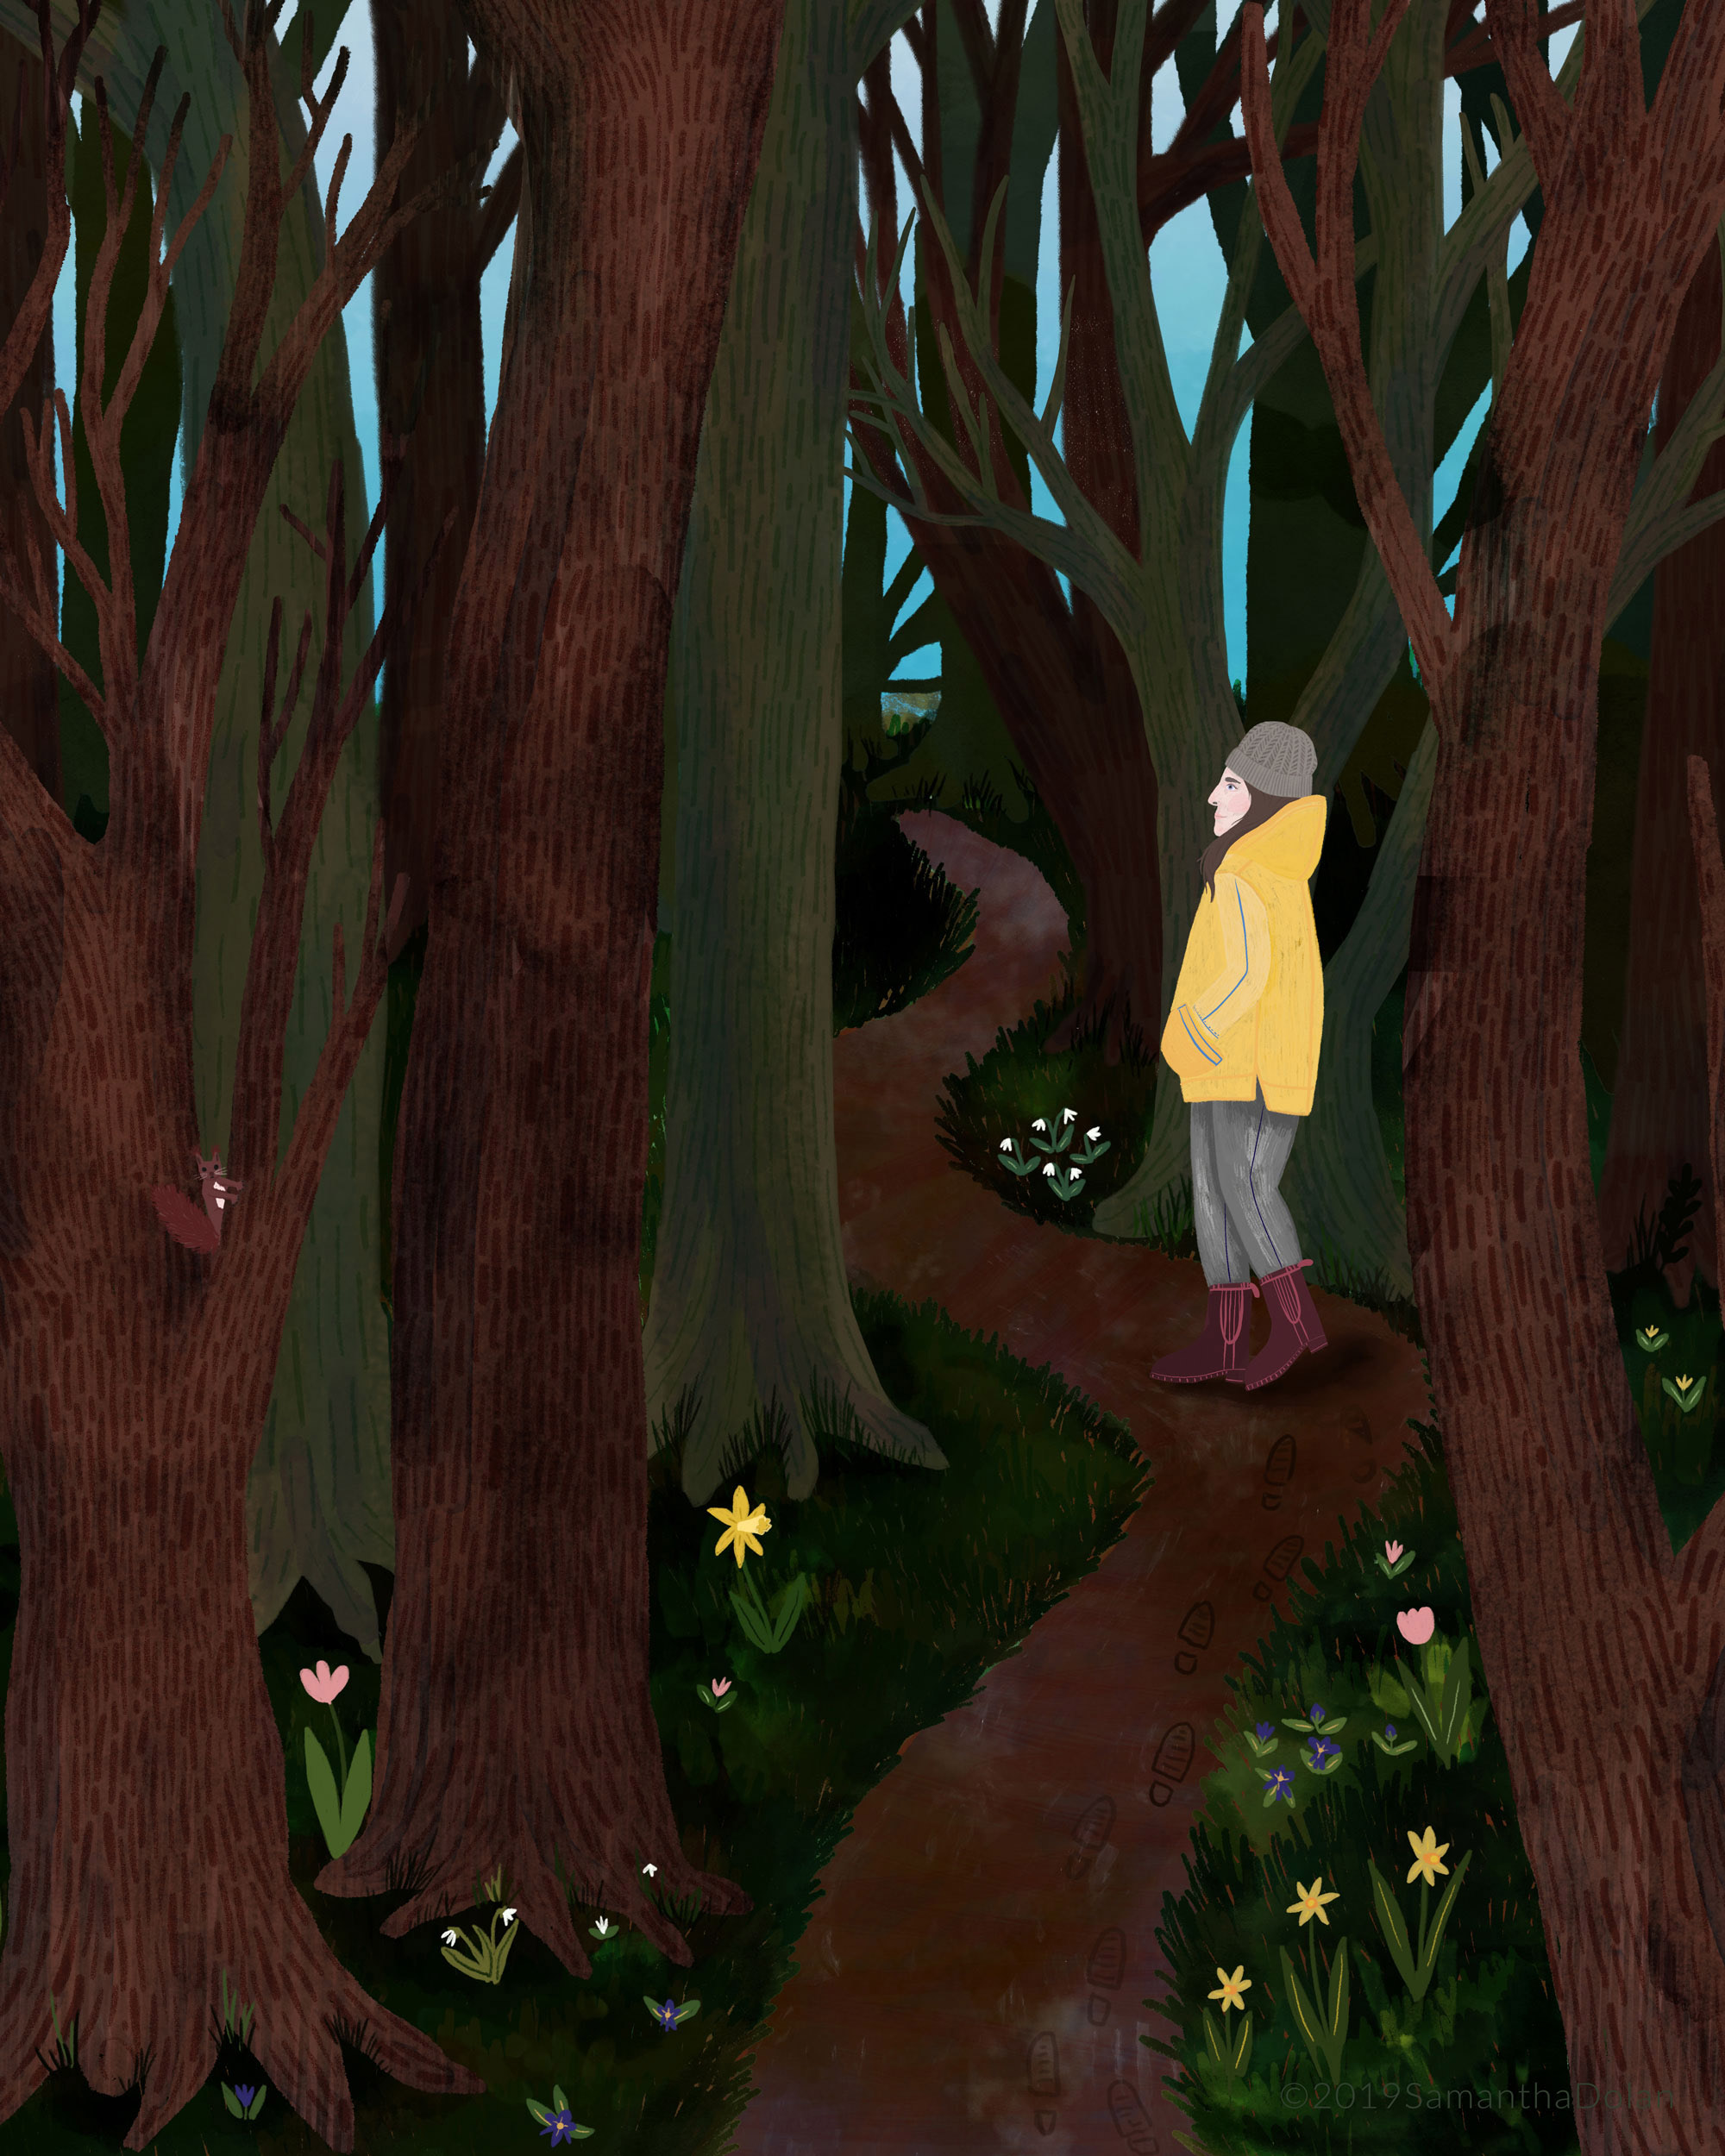 'A walk in the woods' Digital illustration, 2019.